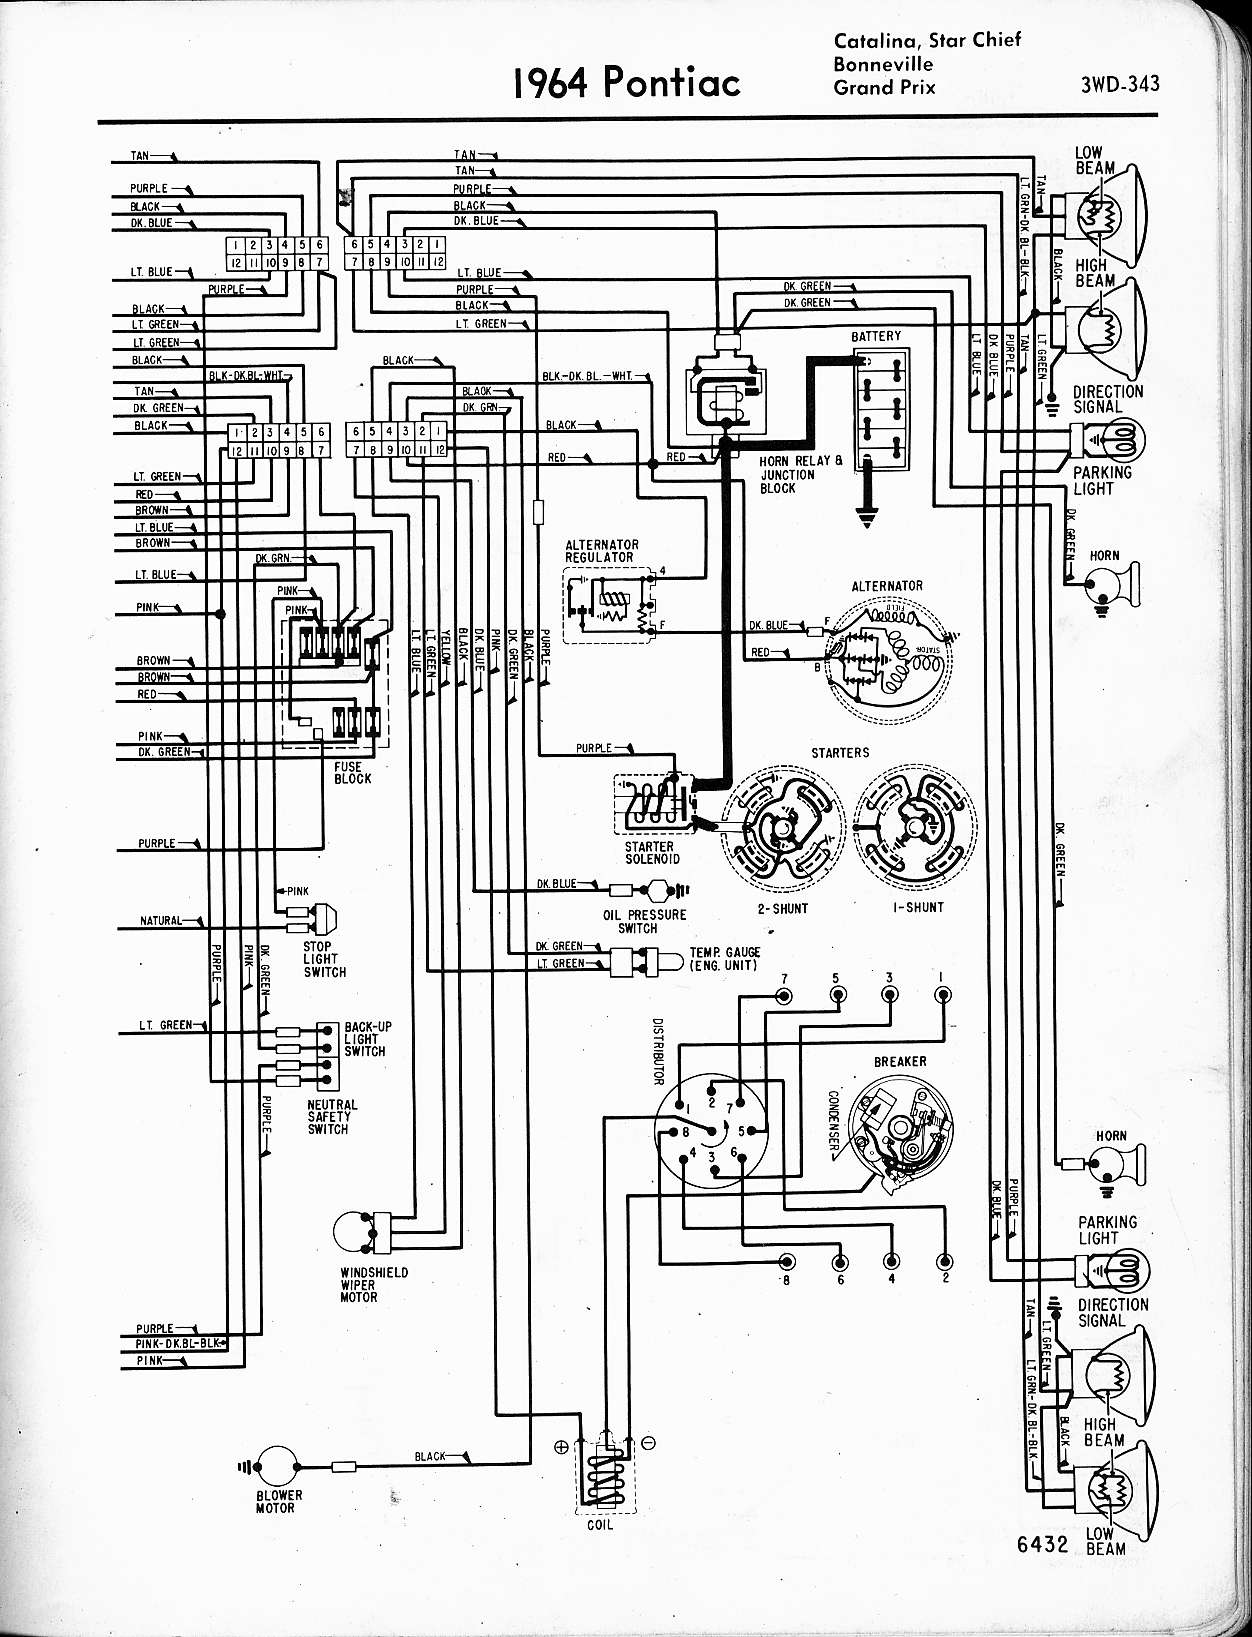 MWire5765 343 wallace racing wiring diagrams Basic Turn Signal Wiring Diagram at crackthecode.co